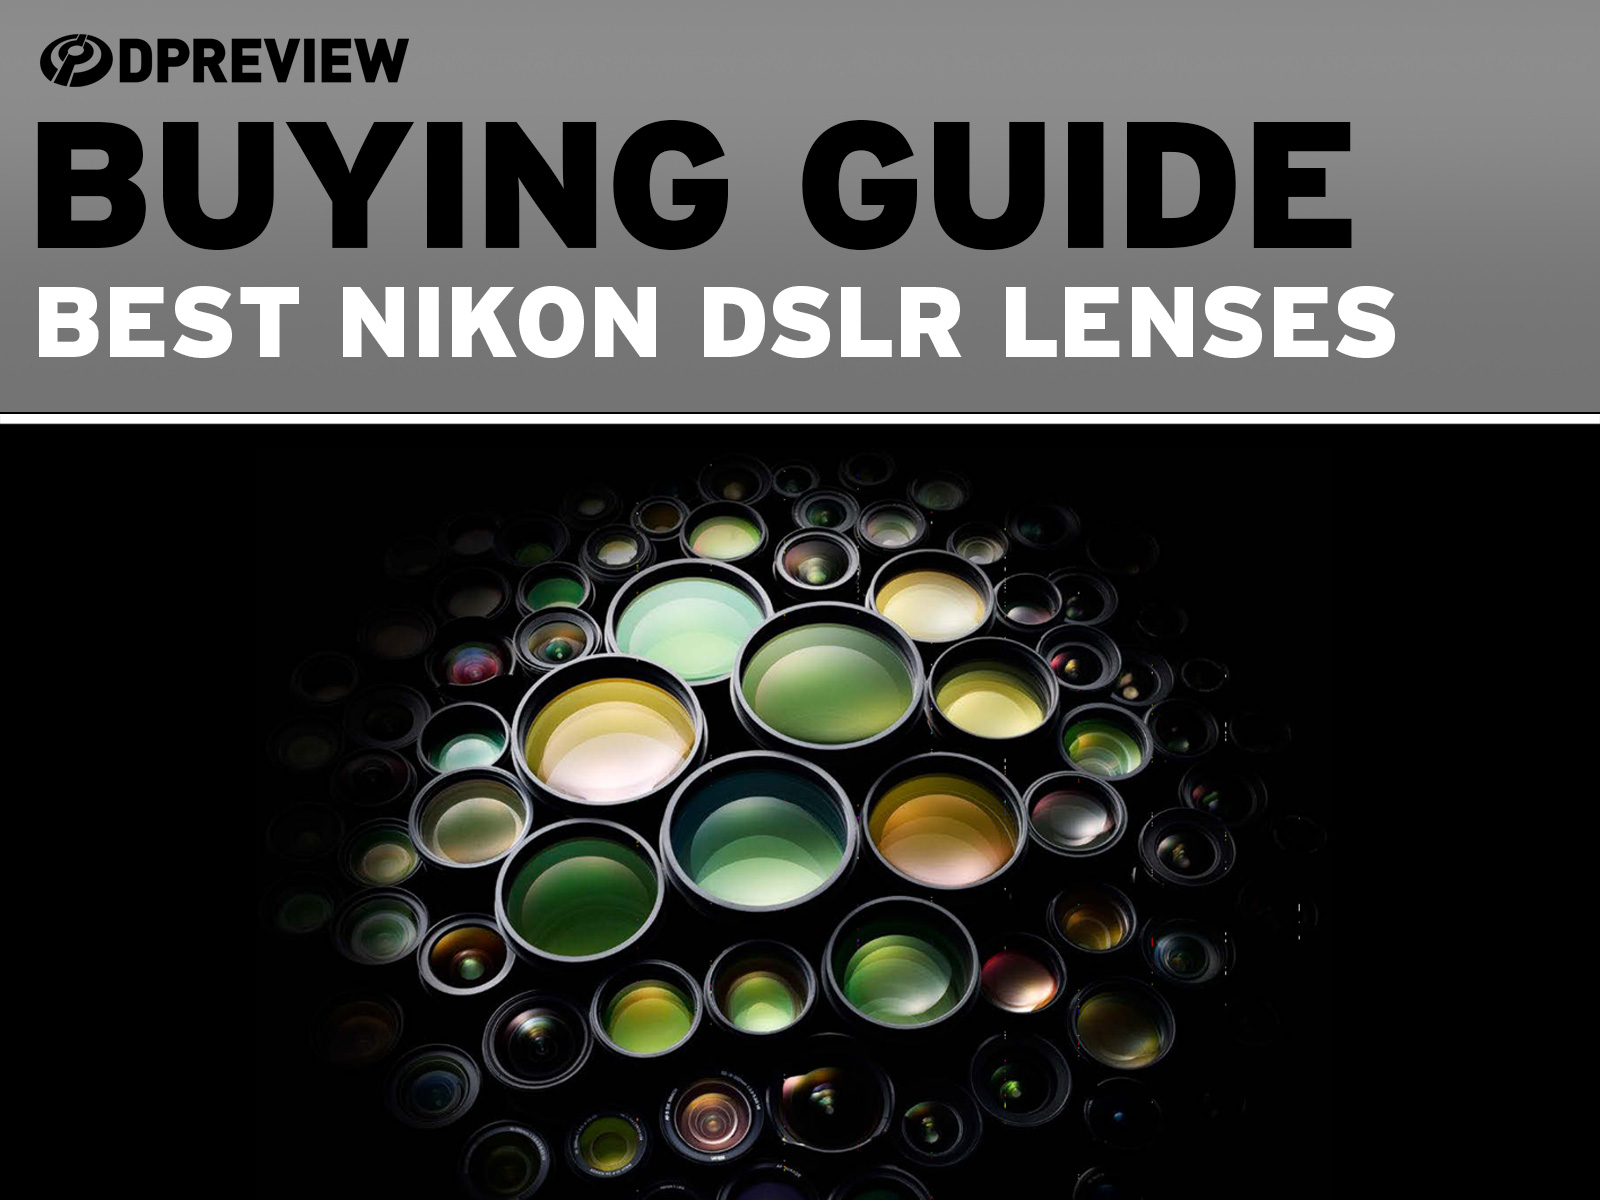 buying guide the best lenses for nikon dslrs digital photography rh dpreview com Buying Guide Logo Gift Guide